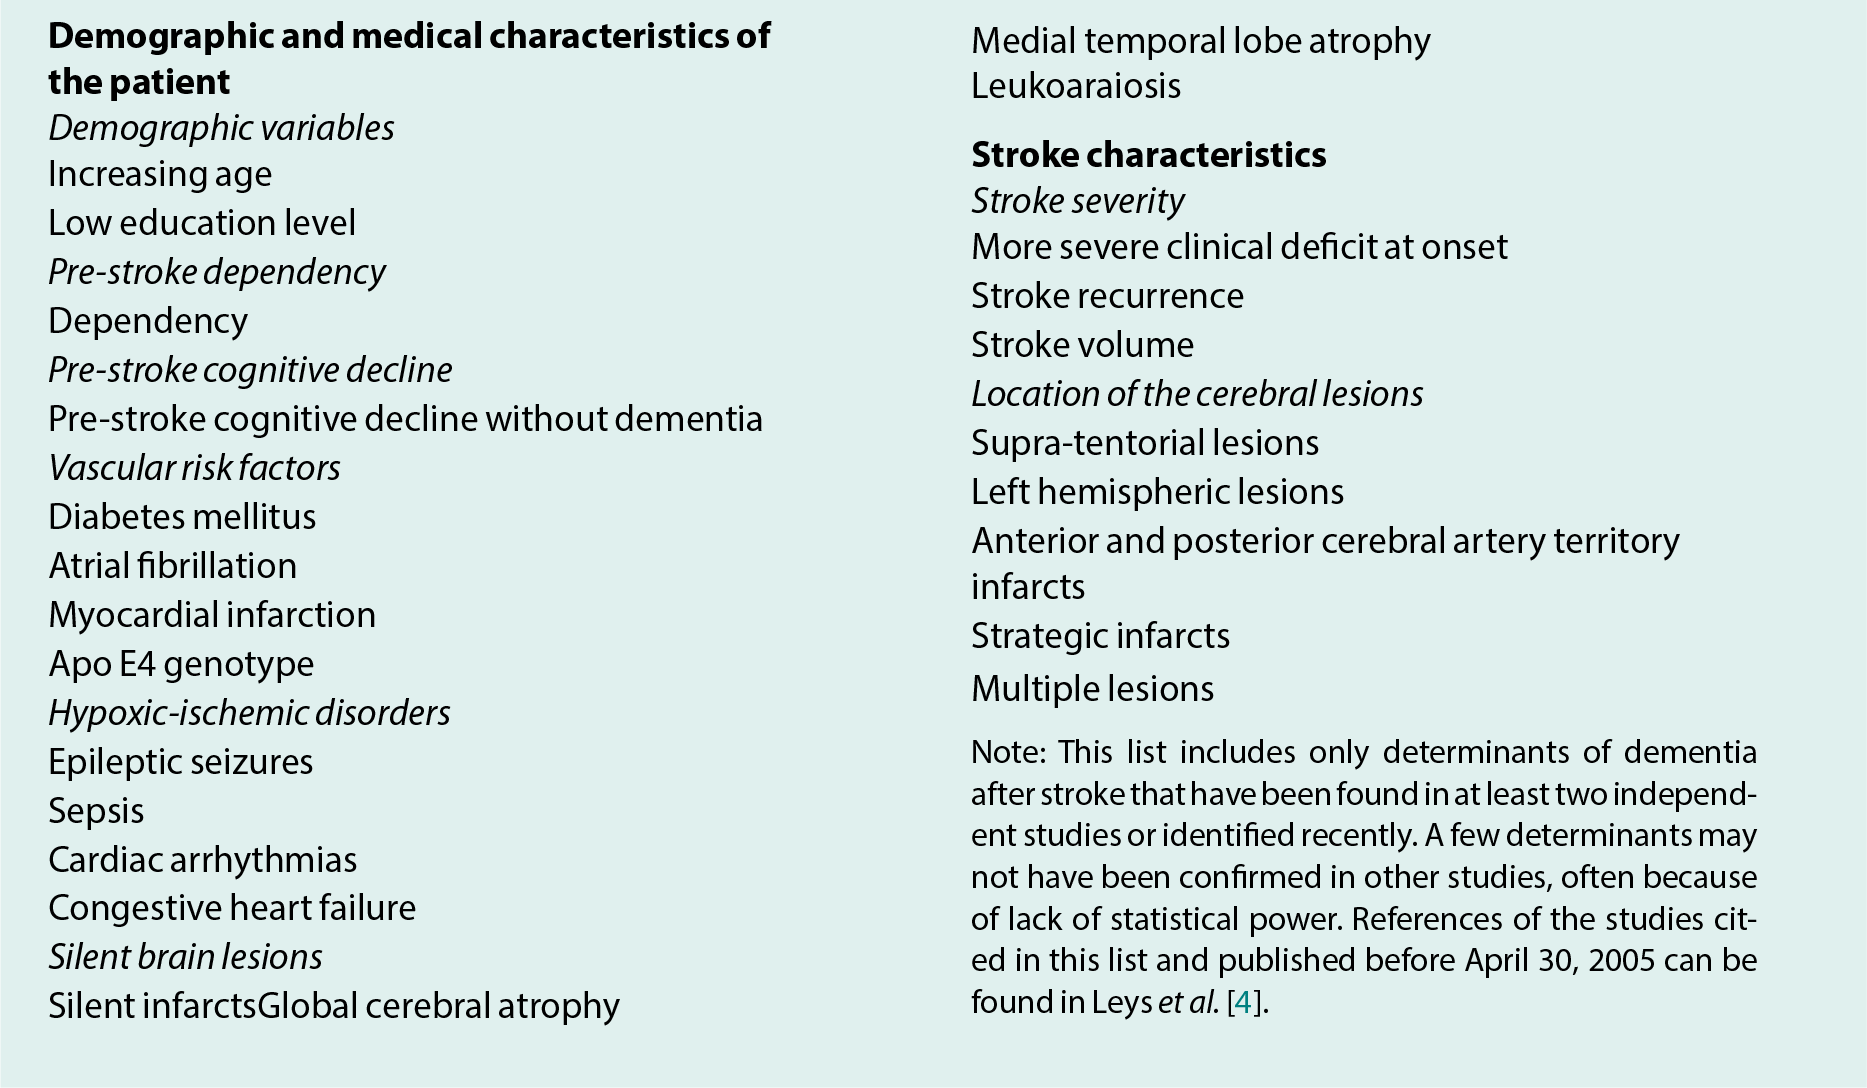 Diagnostics and Syndromes (Section 3) - Textbook of Stroke